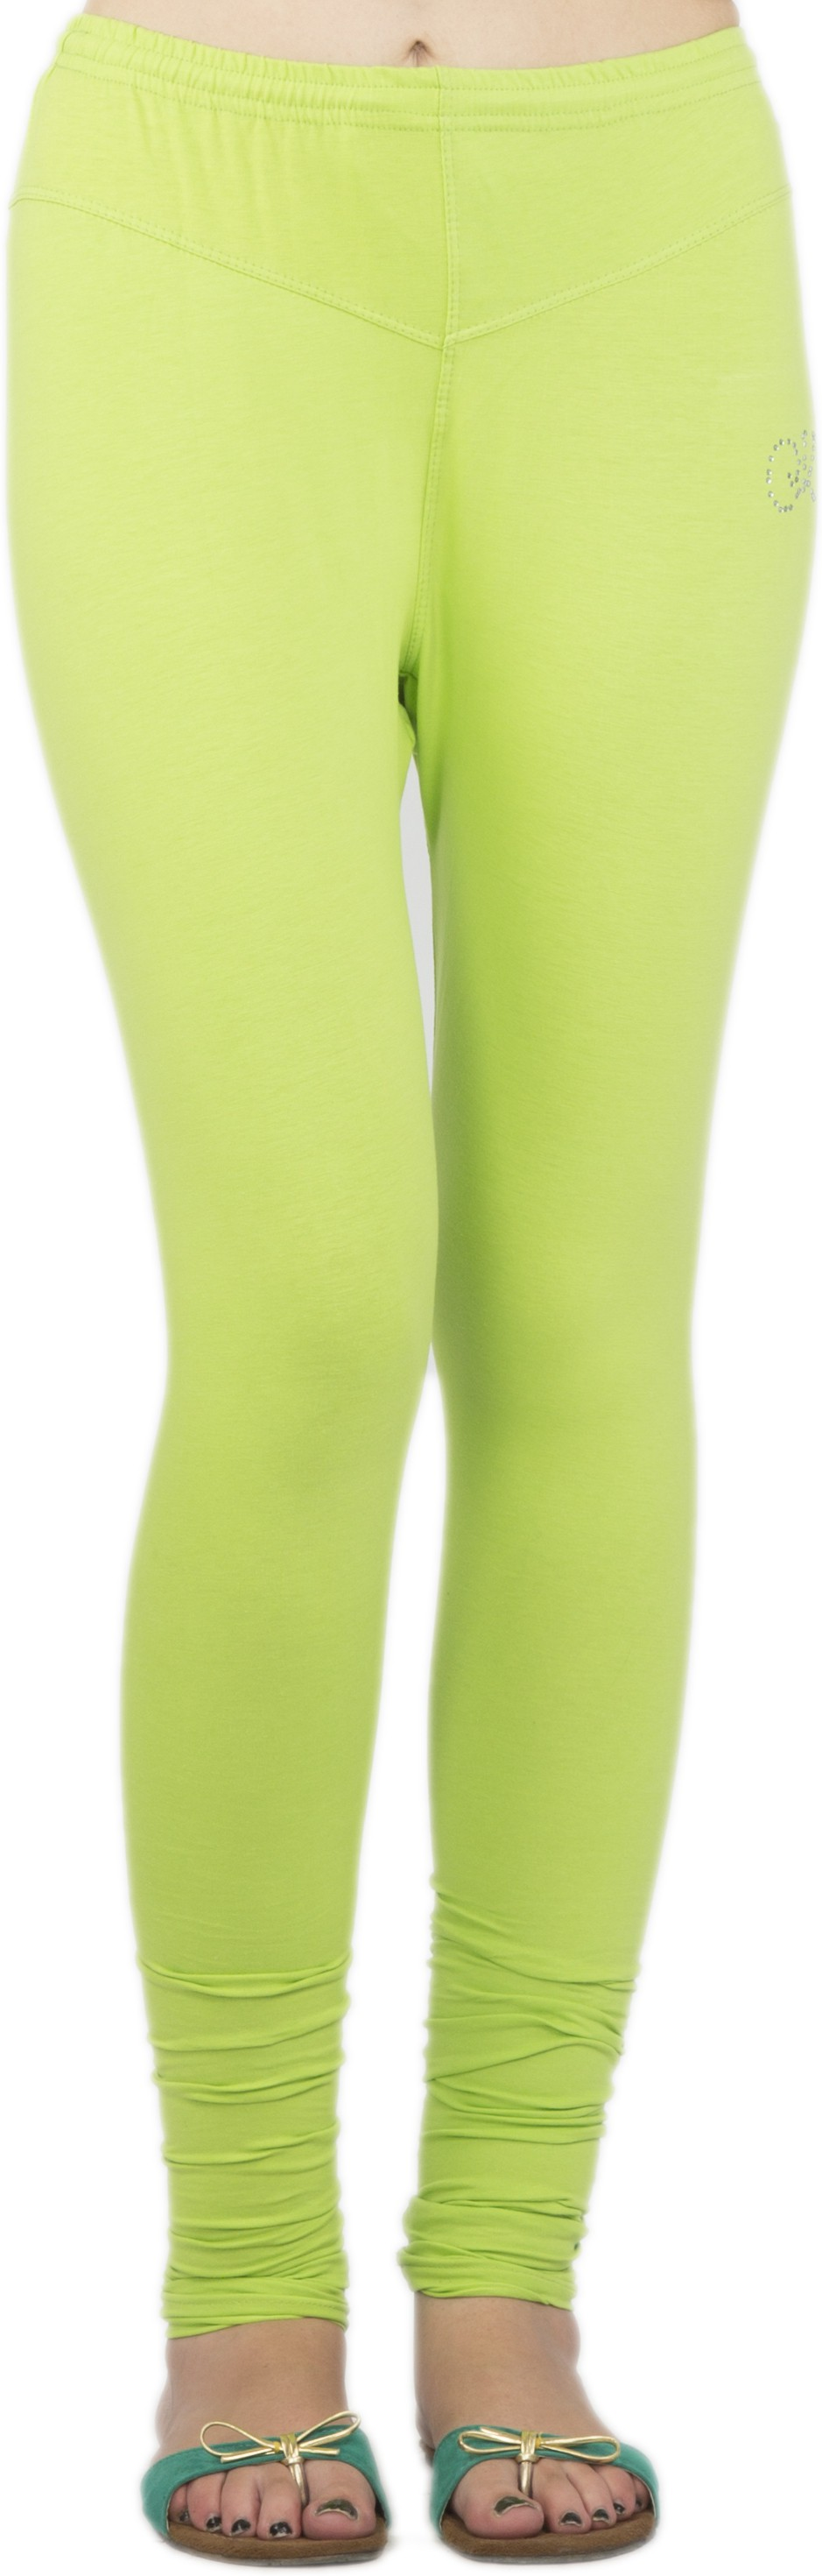 Jublee Womens Green Leggings